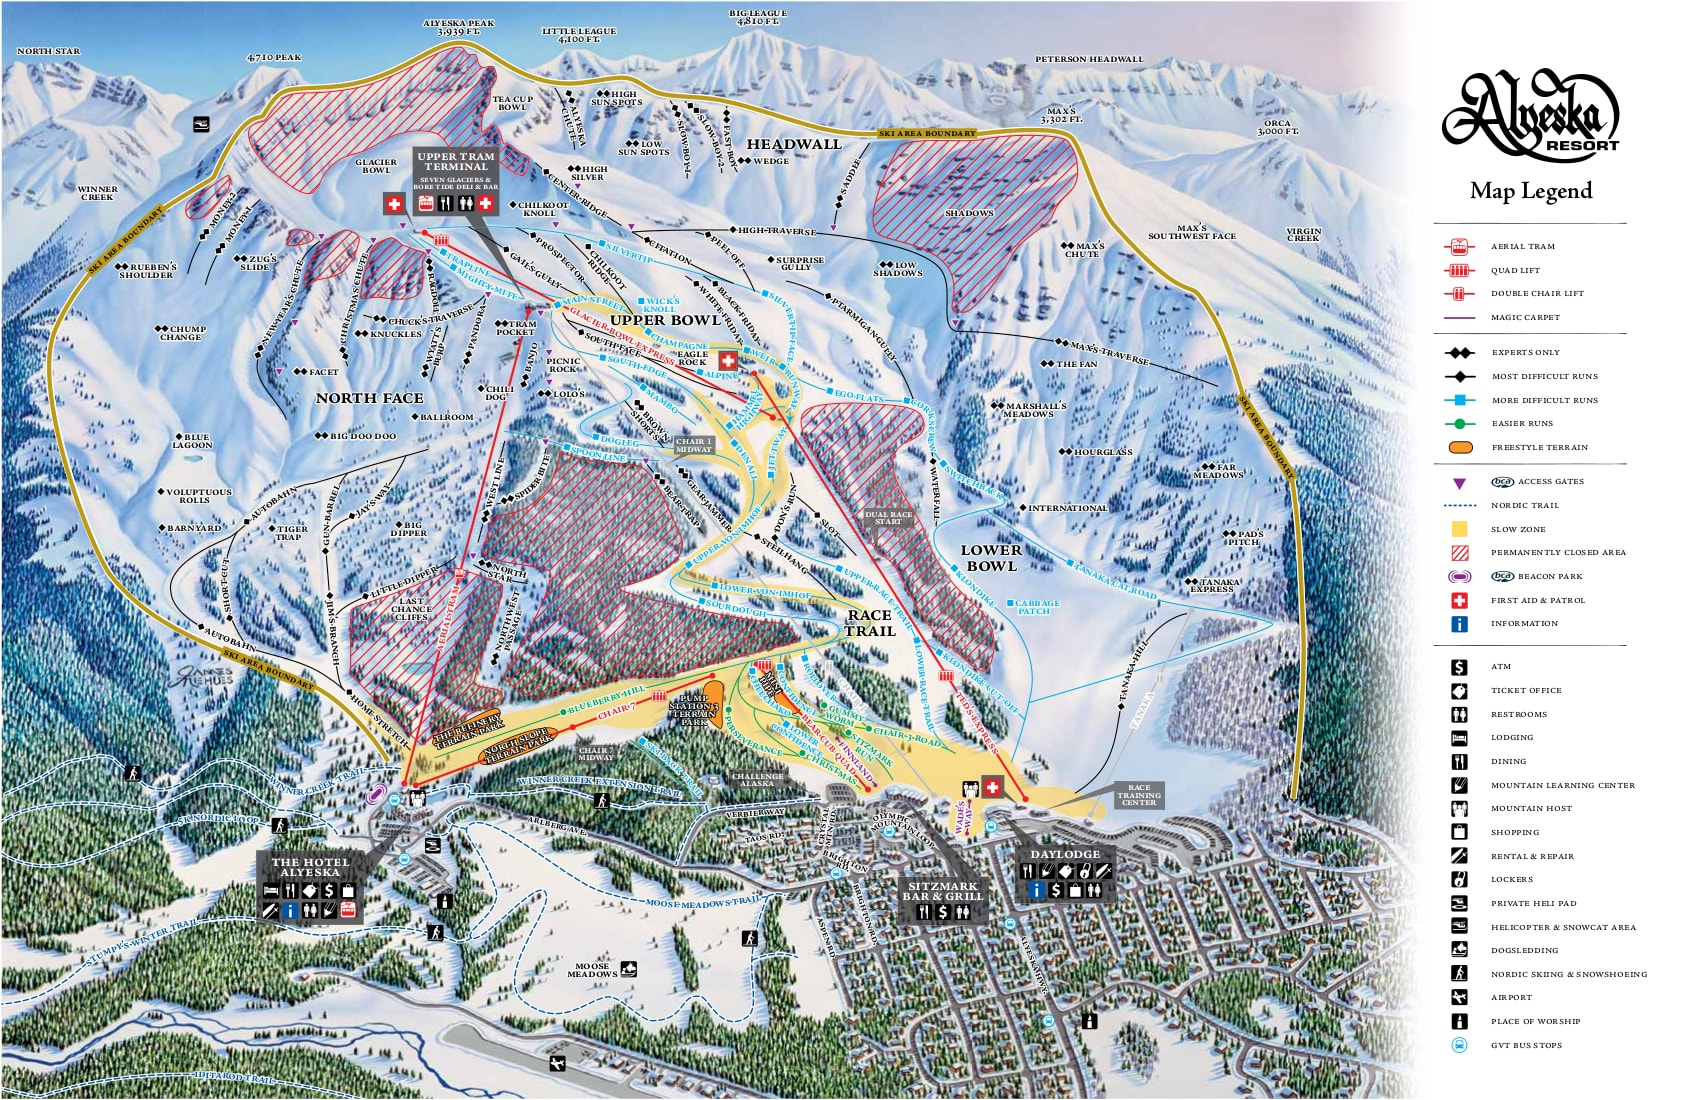 Alyeska Resort Piste / Trail Map